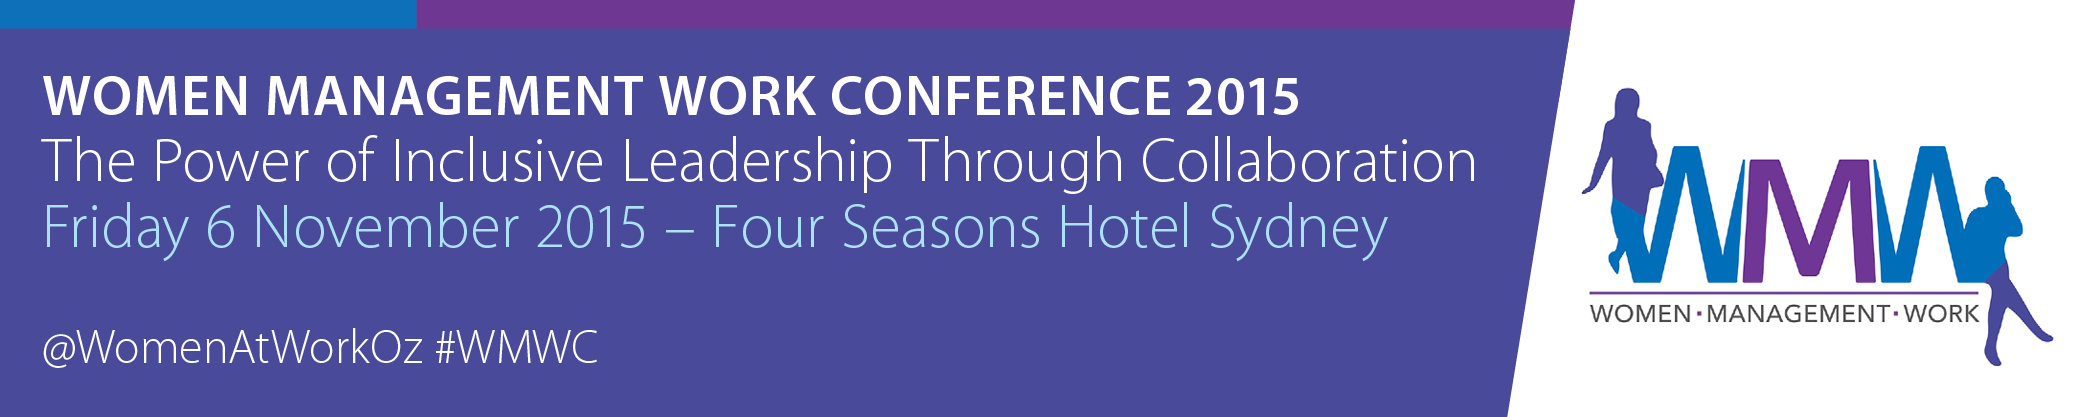 Women Management Work Conference: The Power of Inclusive Leadership Through Collaboration